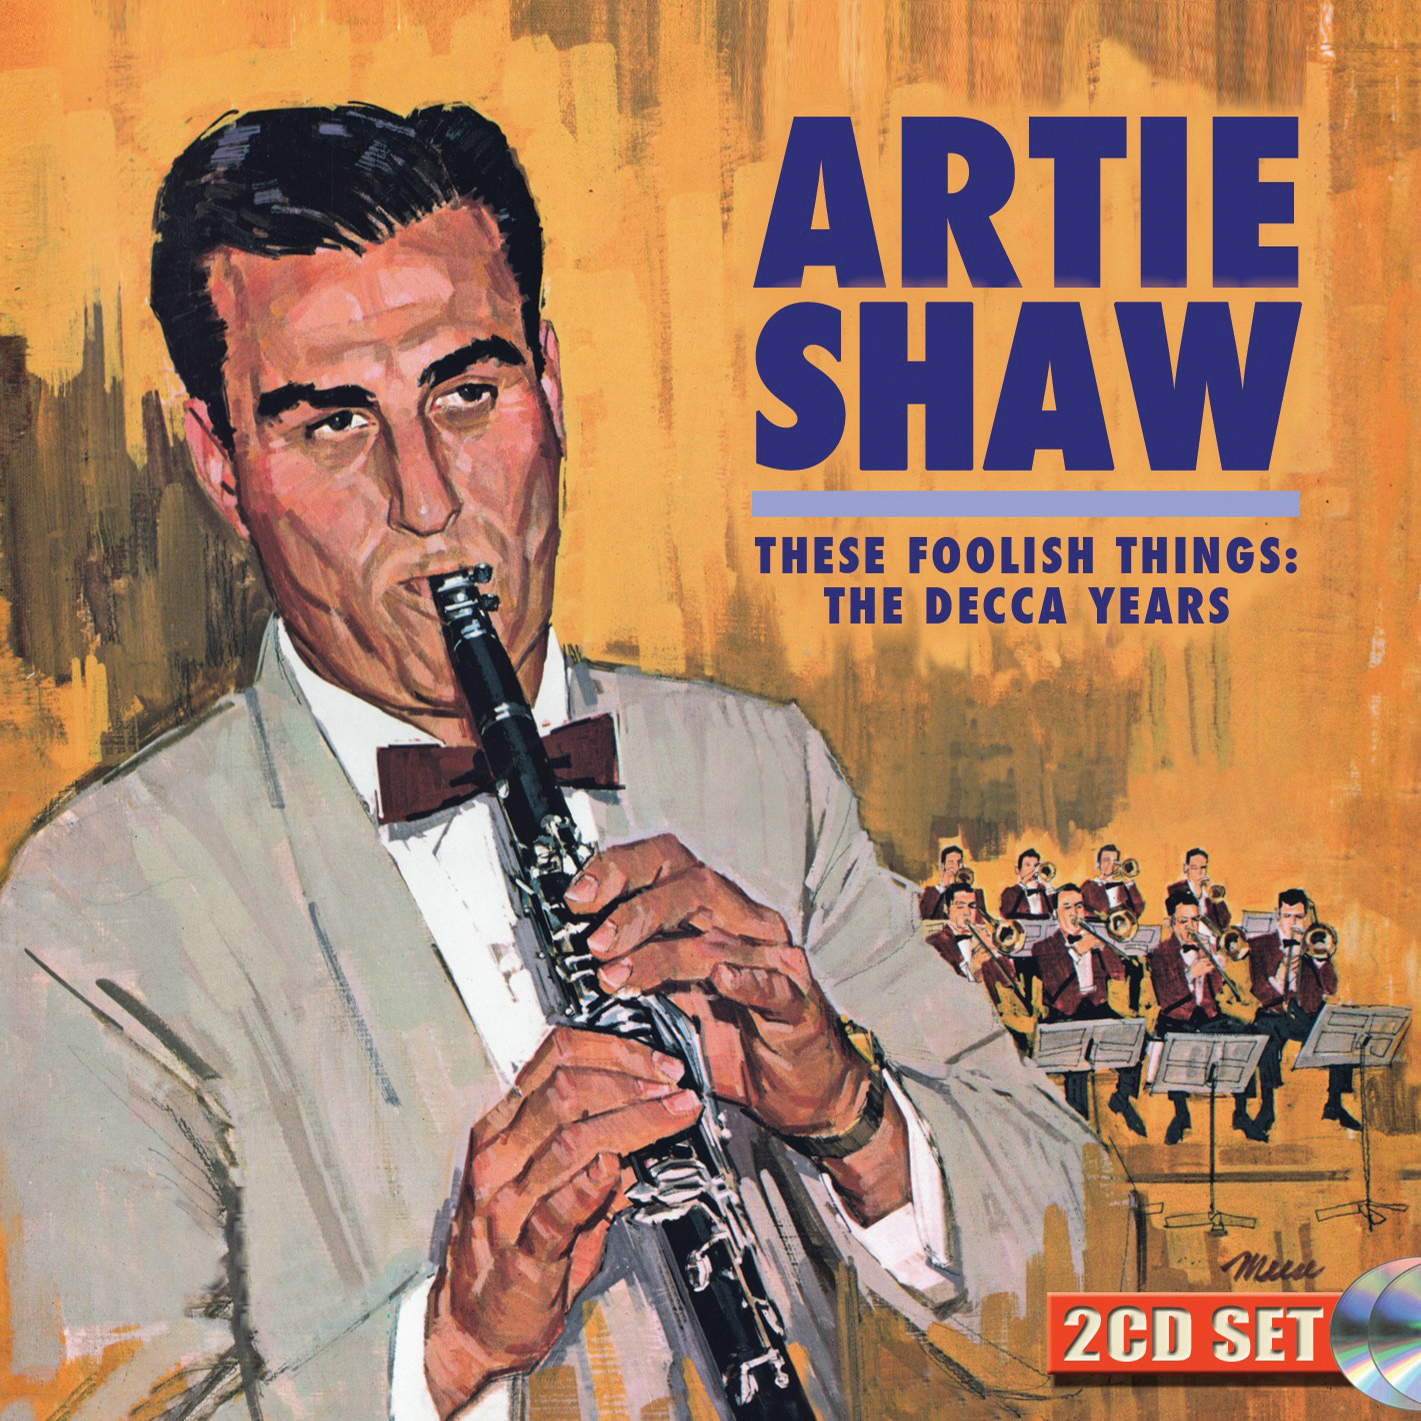 Artie Shaw Genre Artie Shaw These Foolish Things The Decca Years Mvd